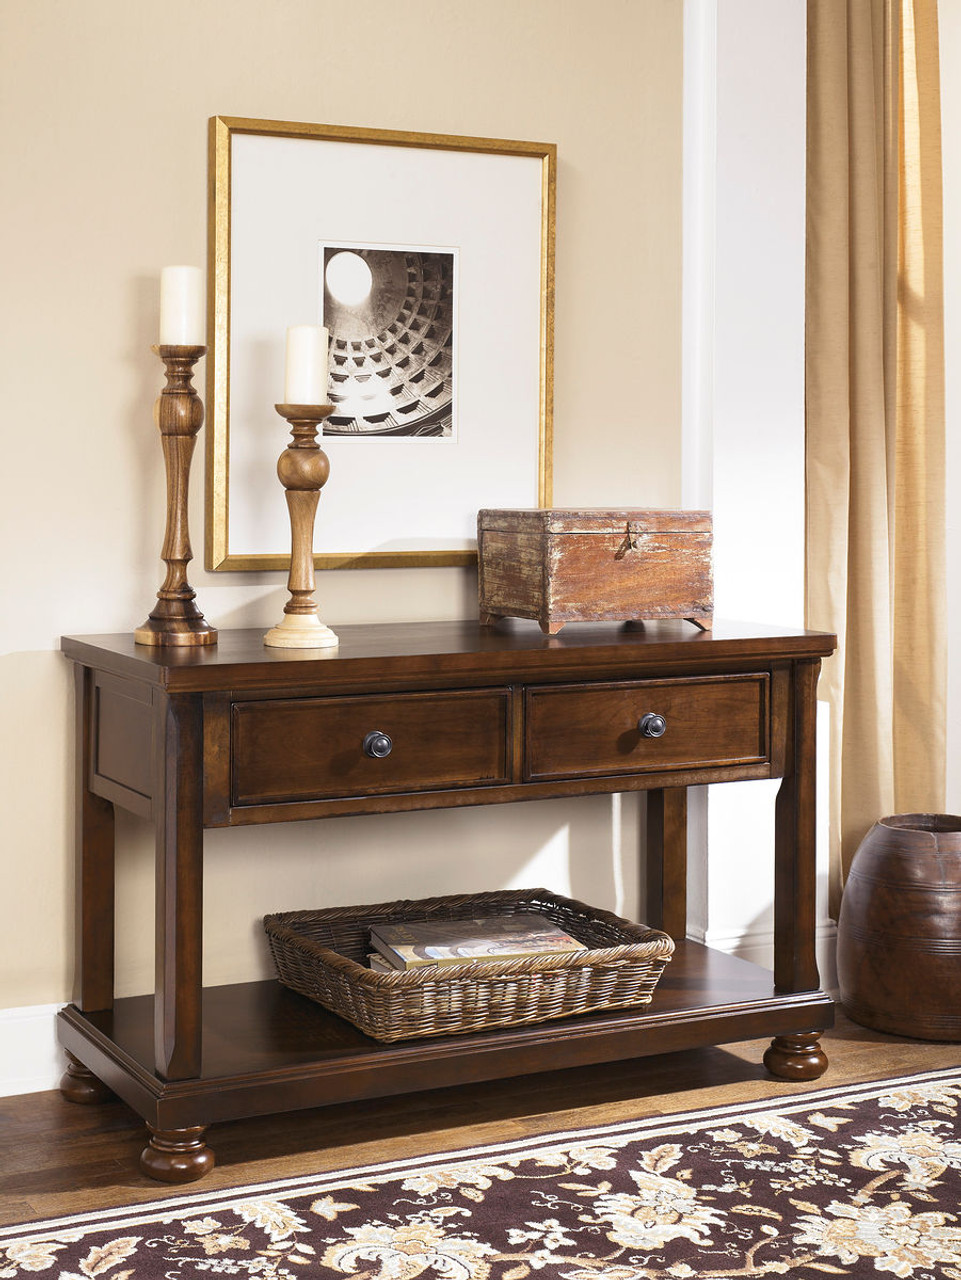 The Porter Rustic Brown Console Sofa Table available at Gibson ...